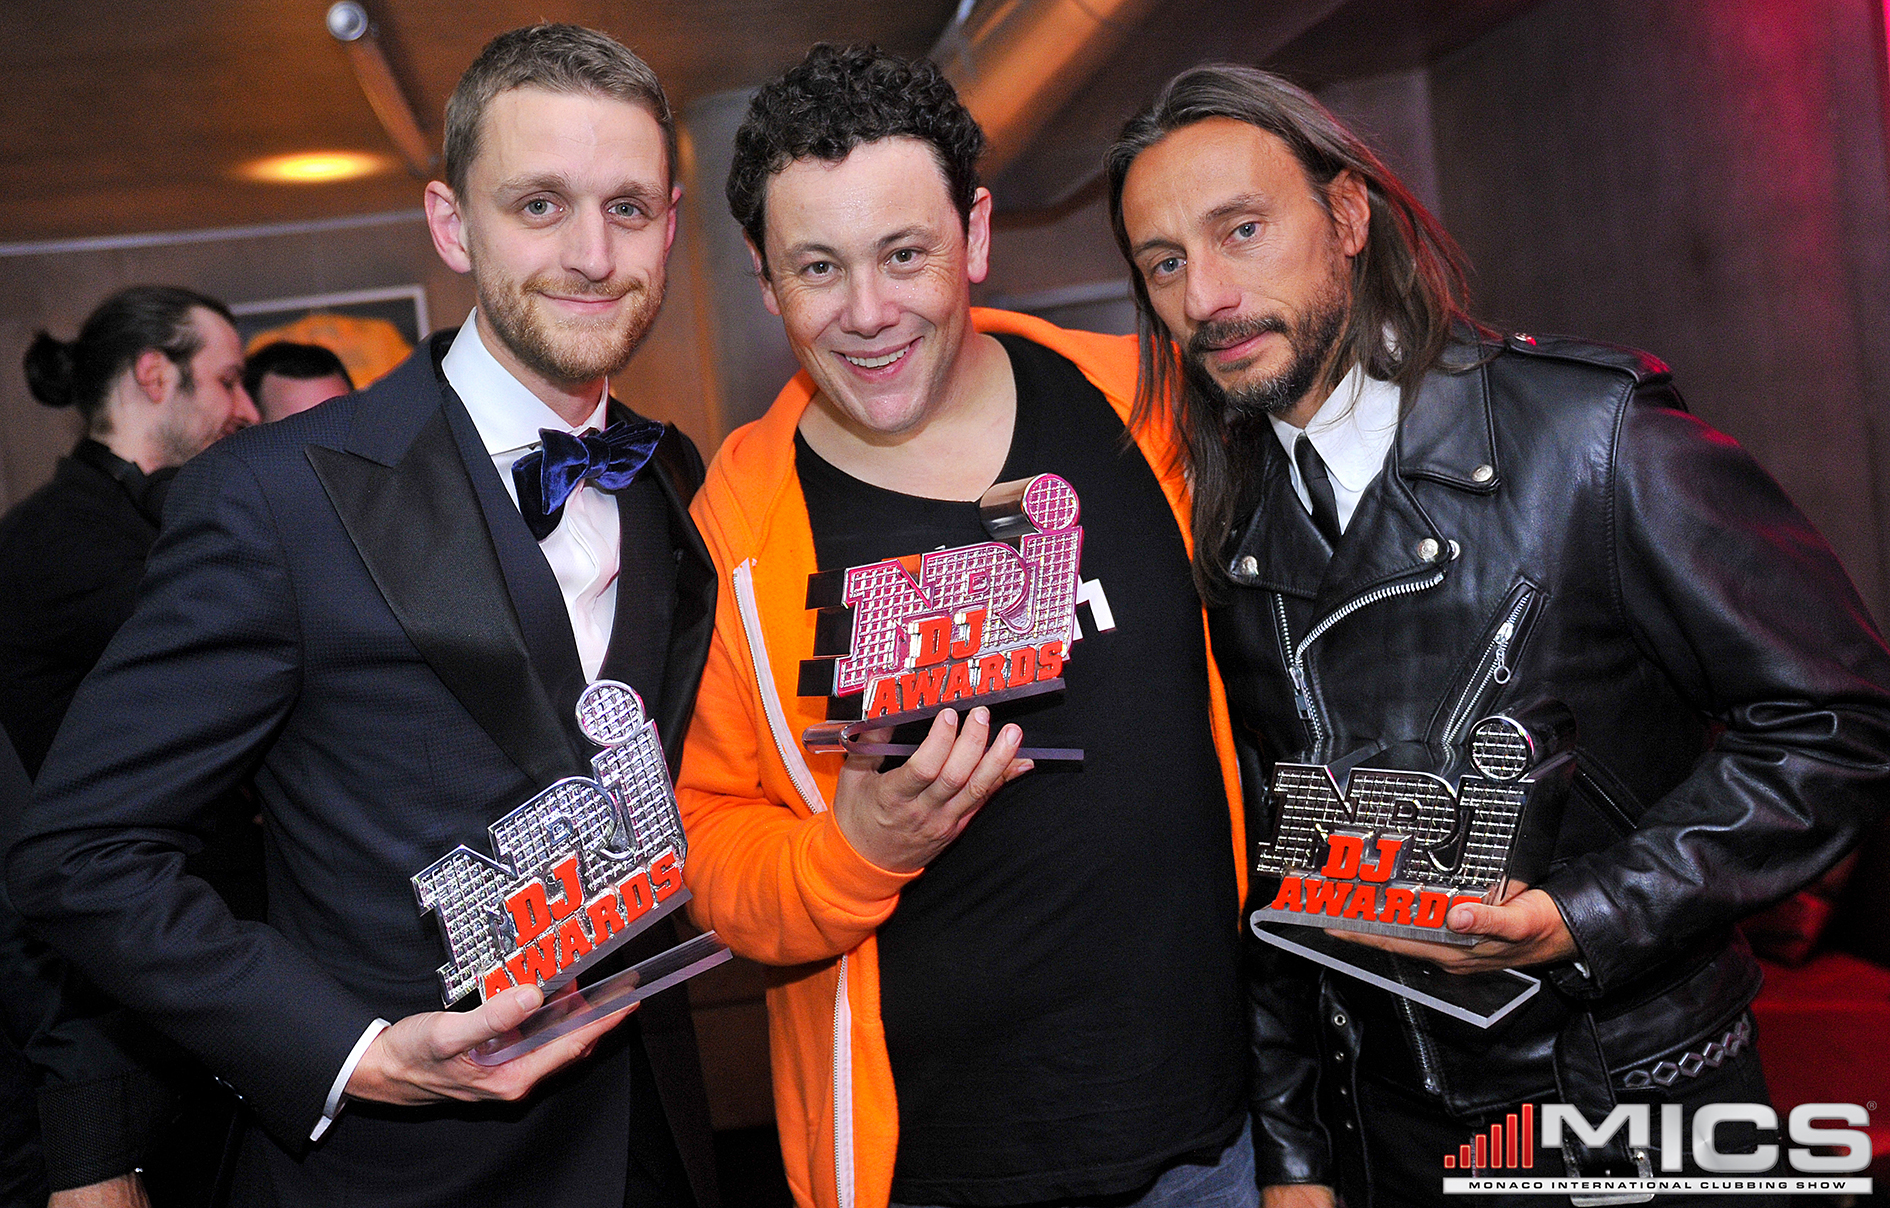 Das war die MICS 2012 in Monaco